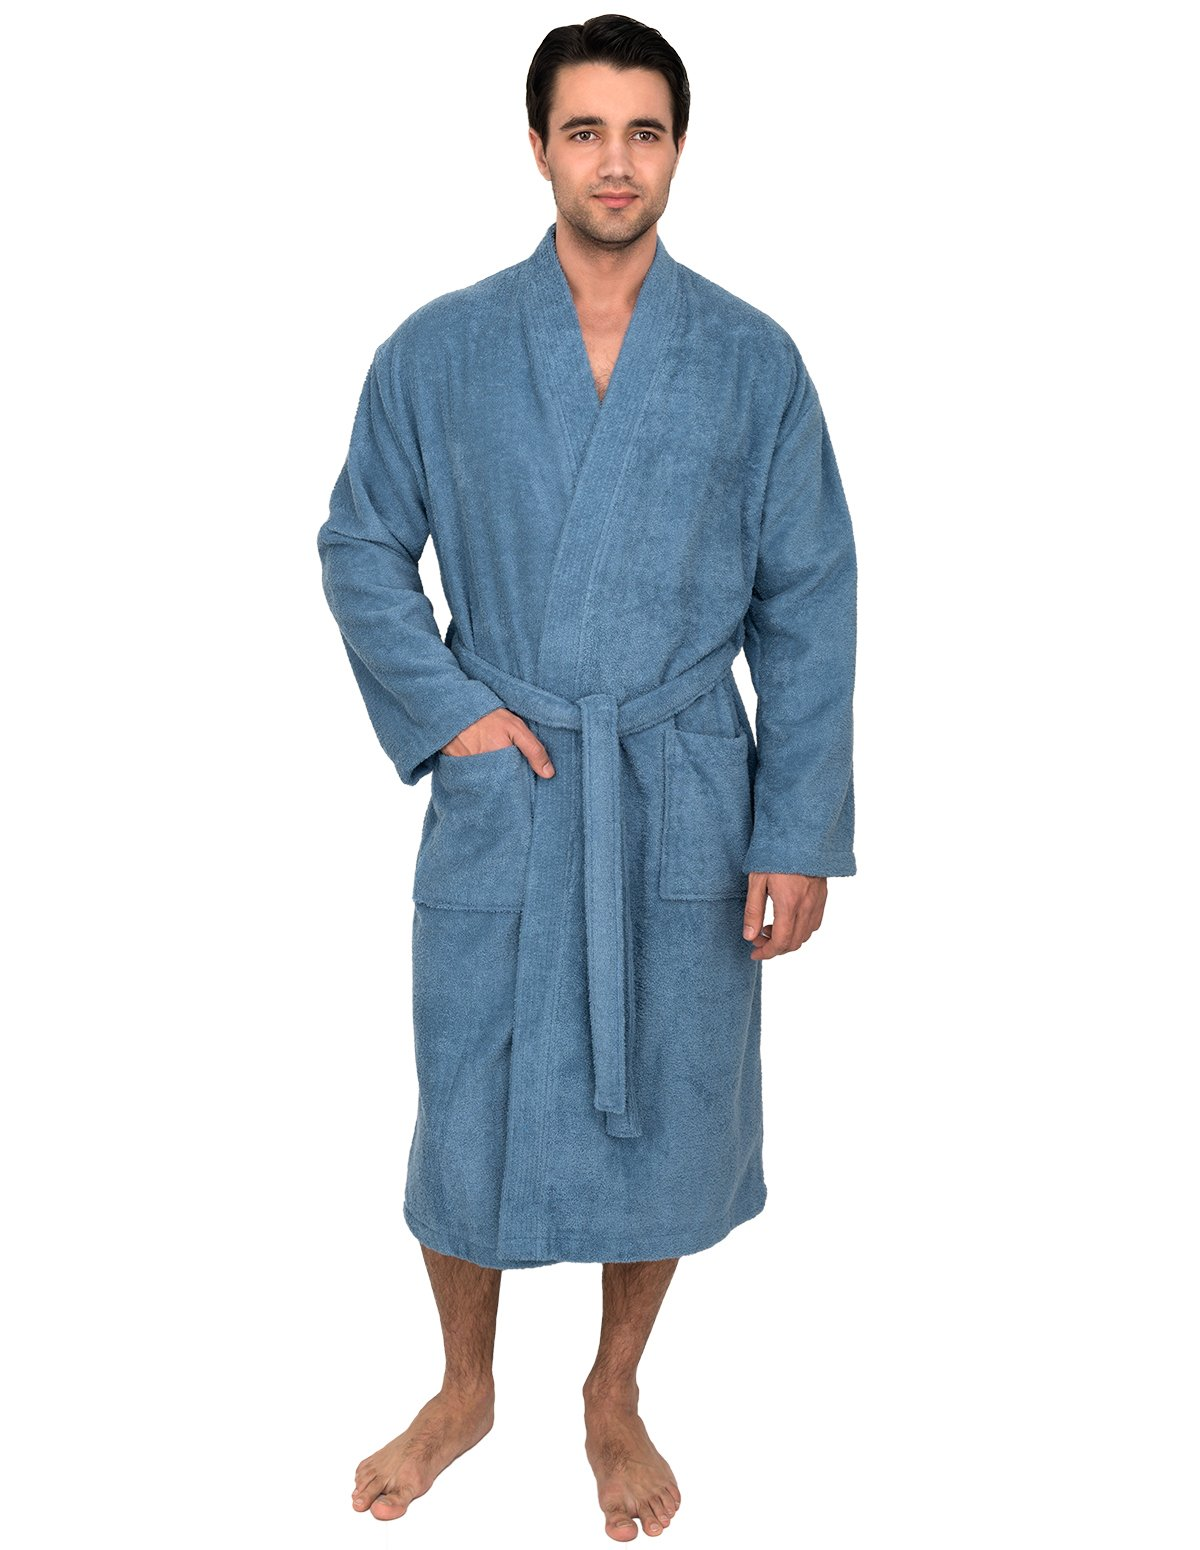 TowelSelections Men's Robe, Turkish Cotton Terry Kimono Bathrobe Medium/Large Blue Heaven